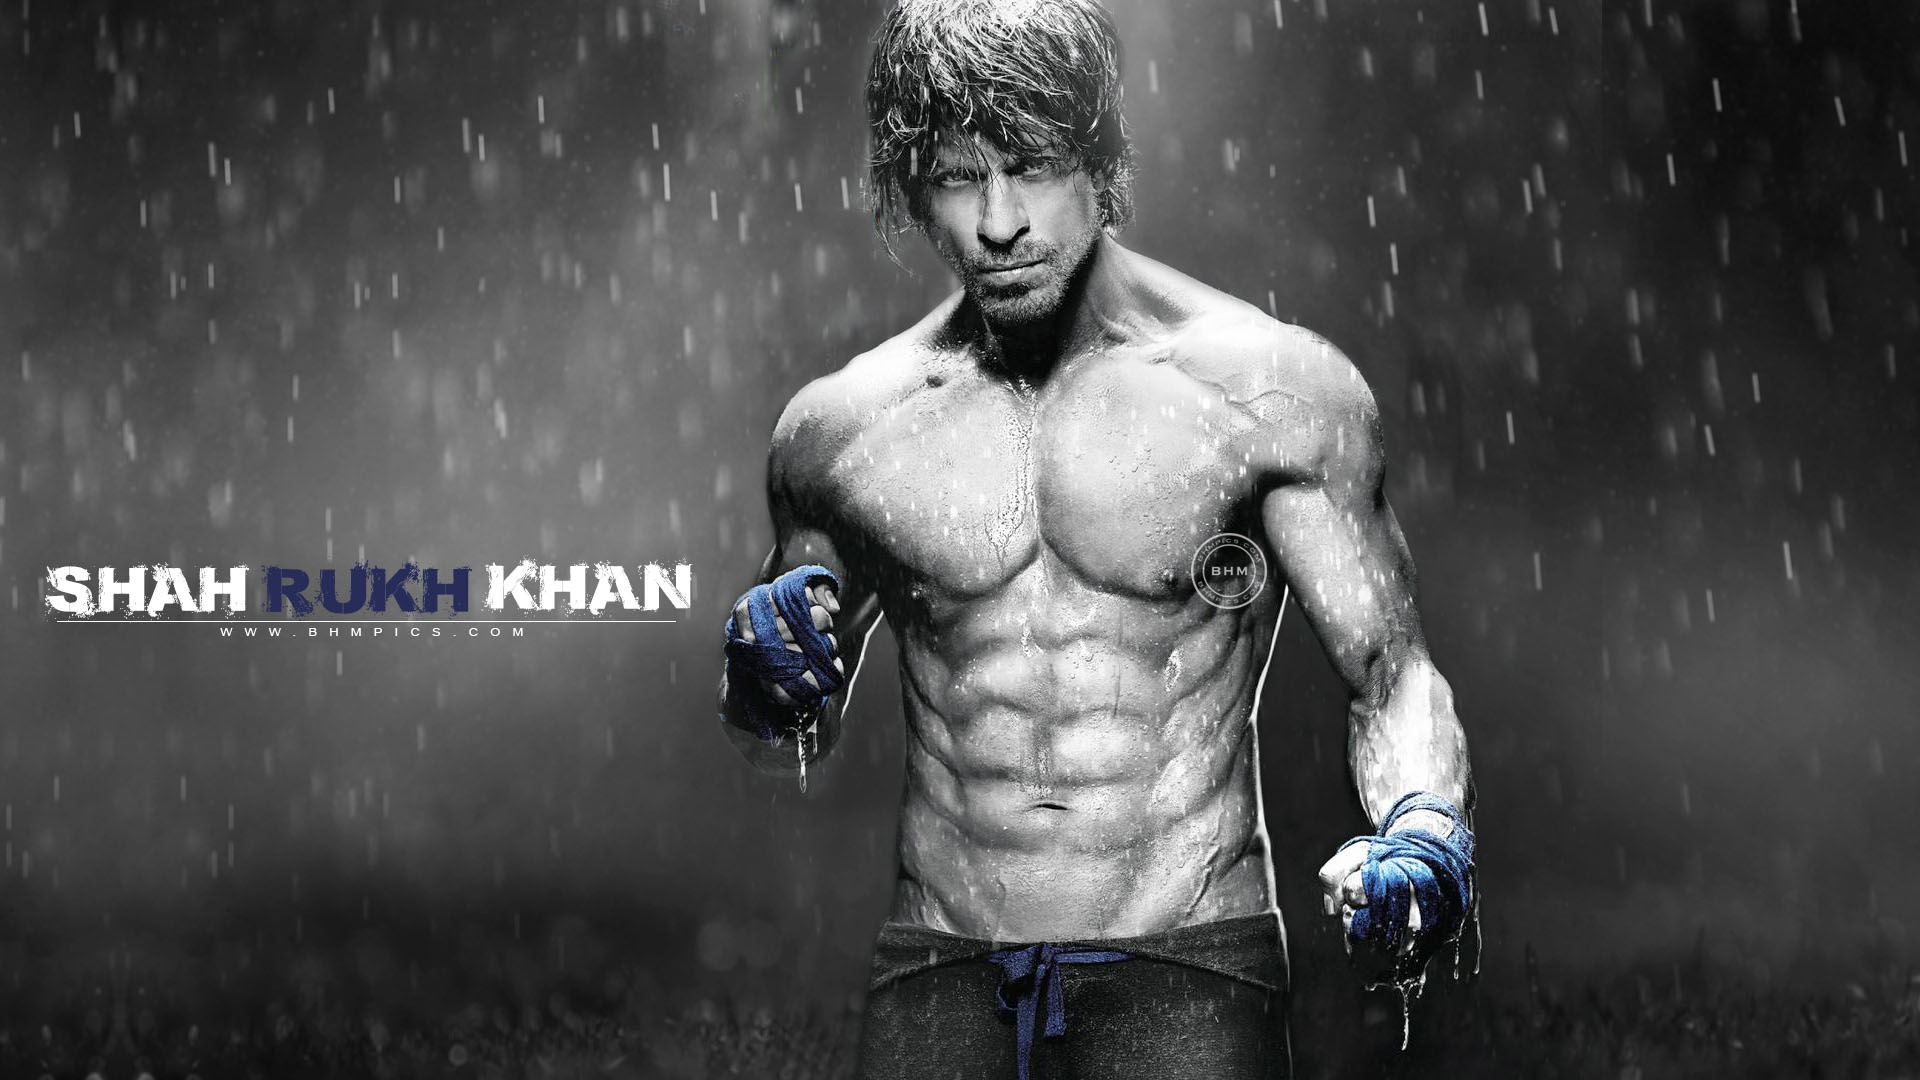 Shah Rukh Khan Eight Pack Abs | 1920 x 1080 | Download | Close: https://www.bhmpics.com/view-shah_rukh_khan_eight_pack_abs...